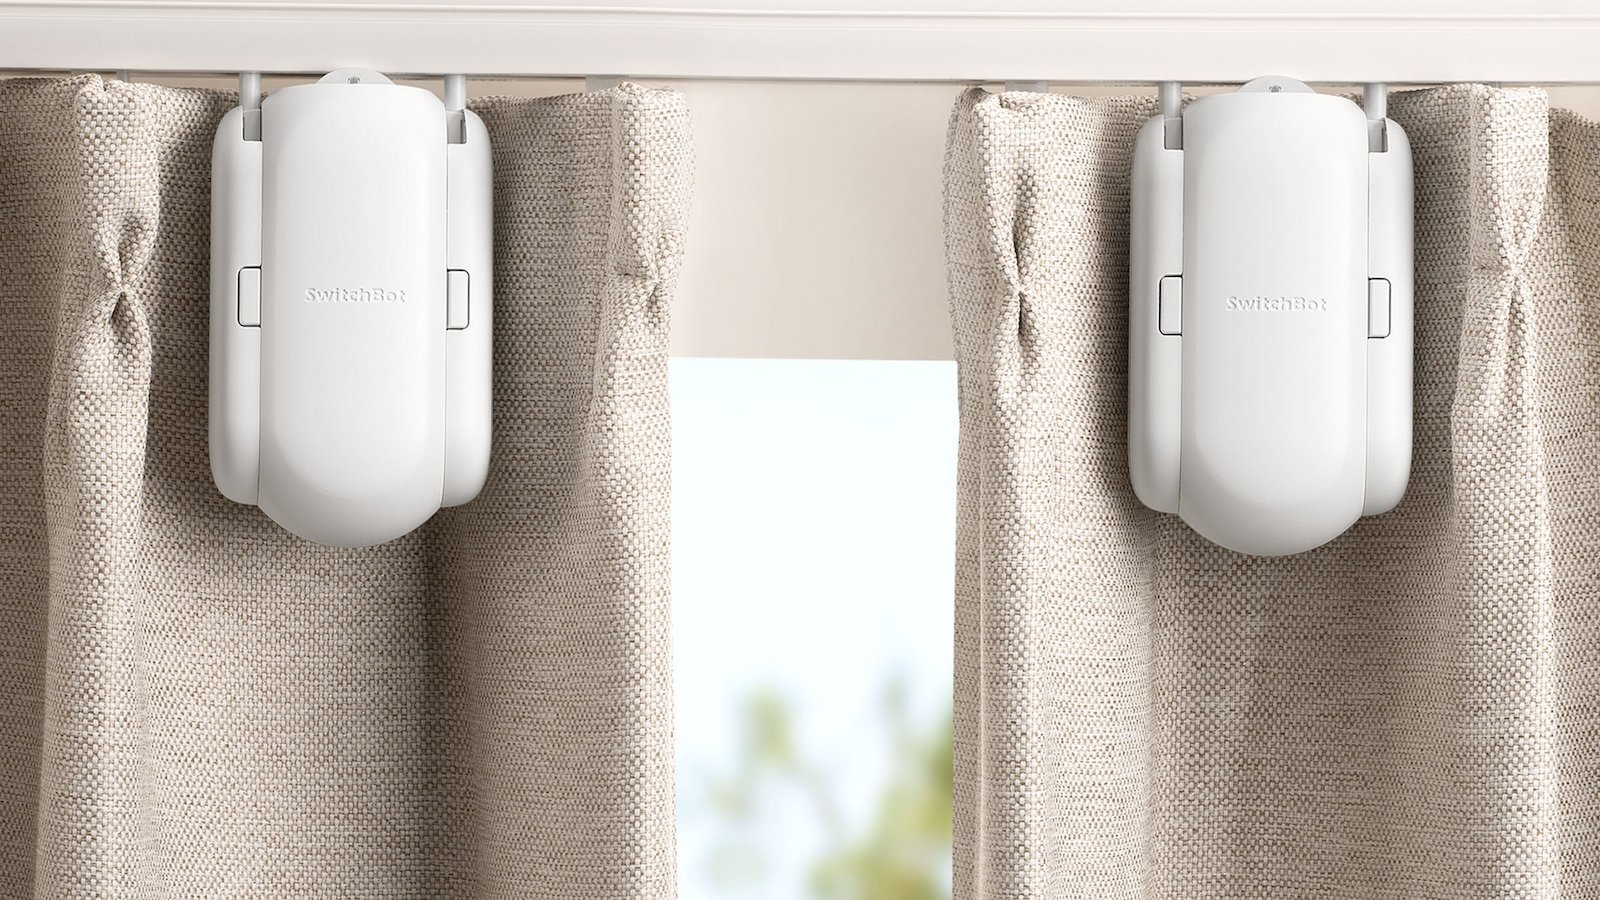 SwitchBot Smart Curtain lets you schedule when your curtains open and close